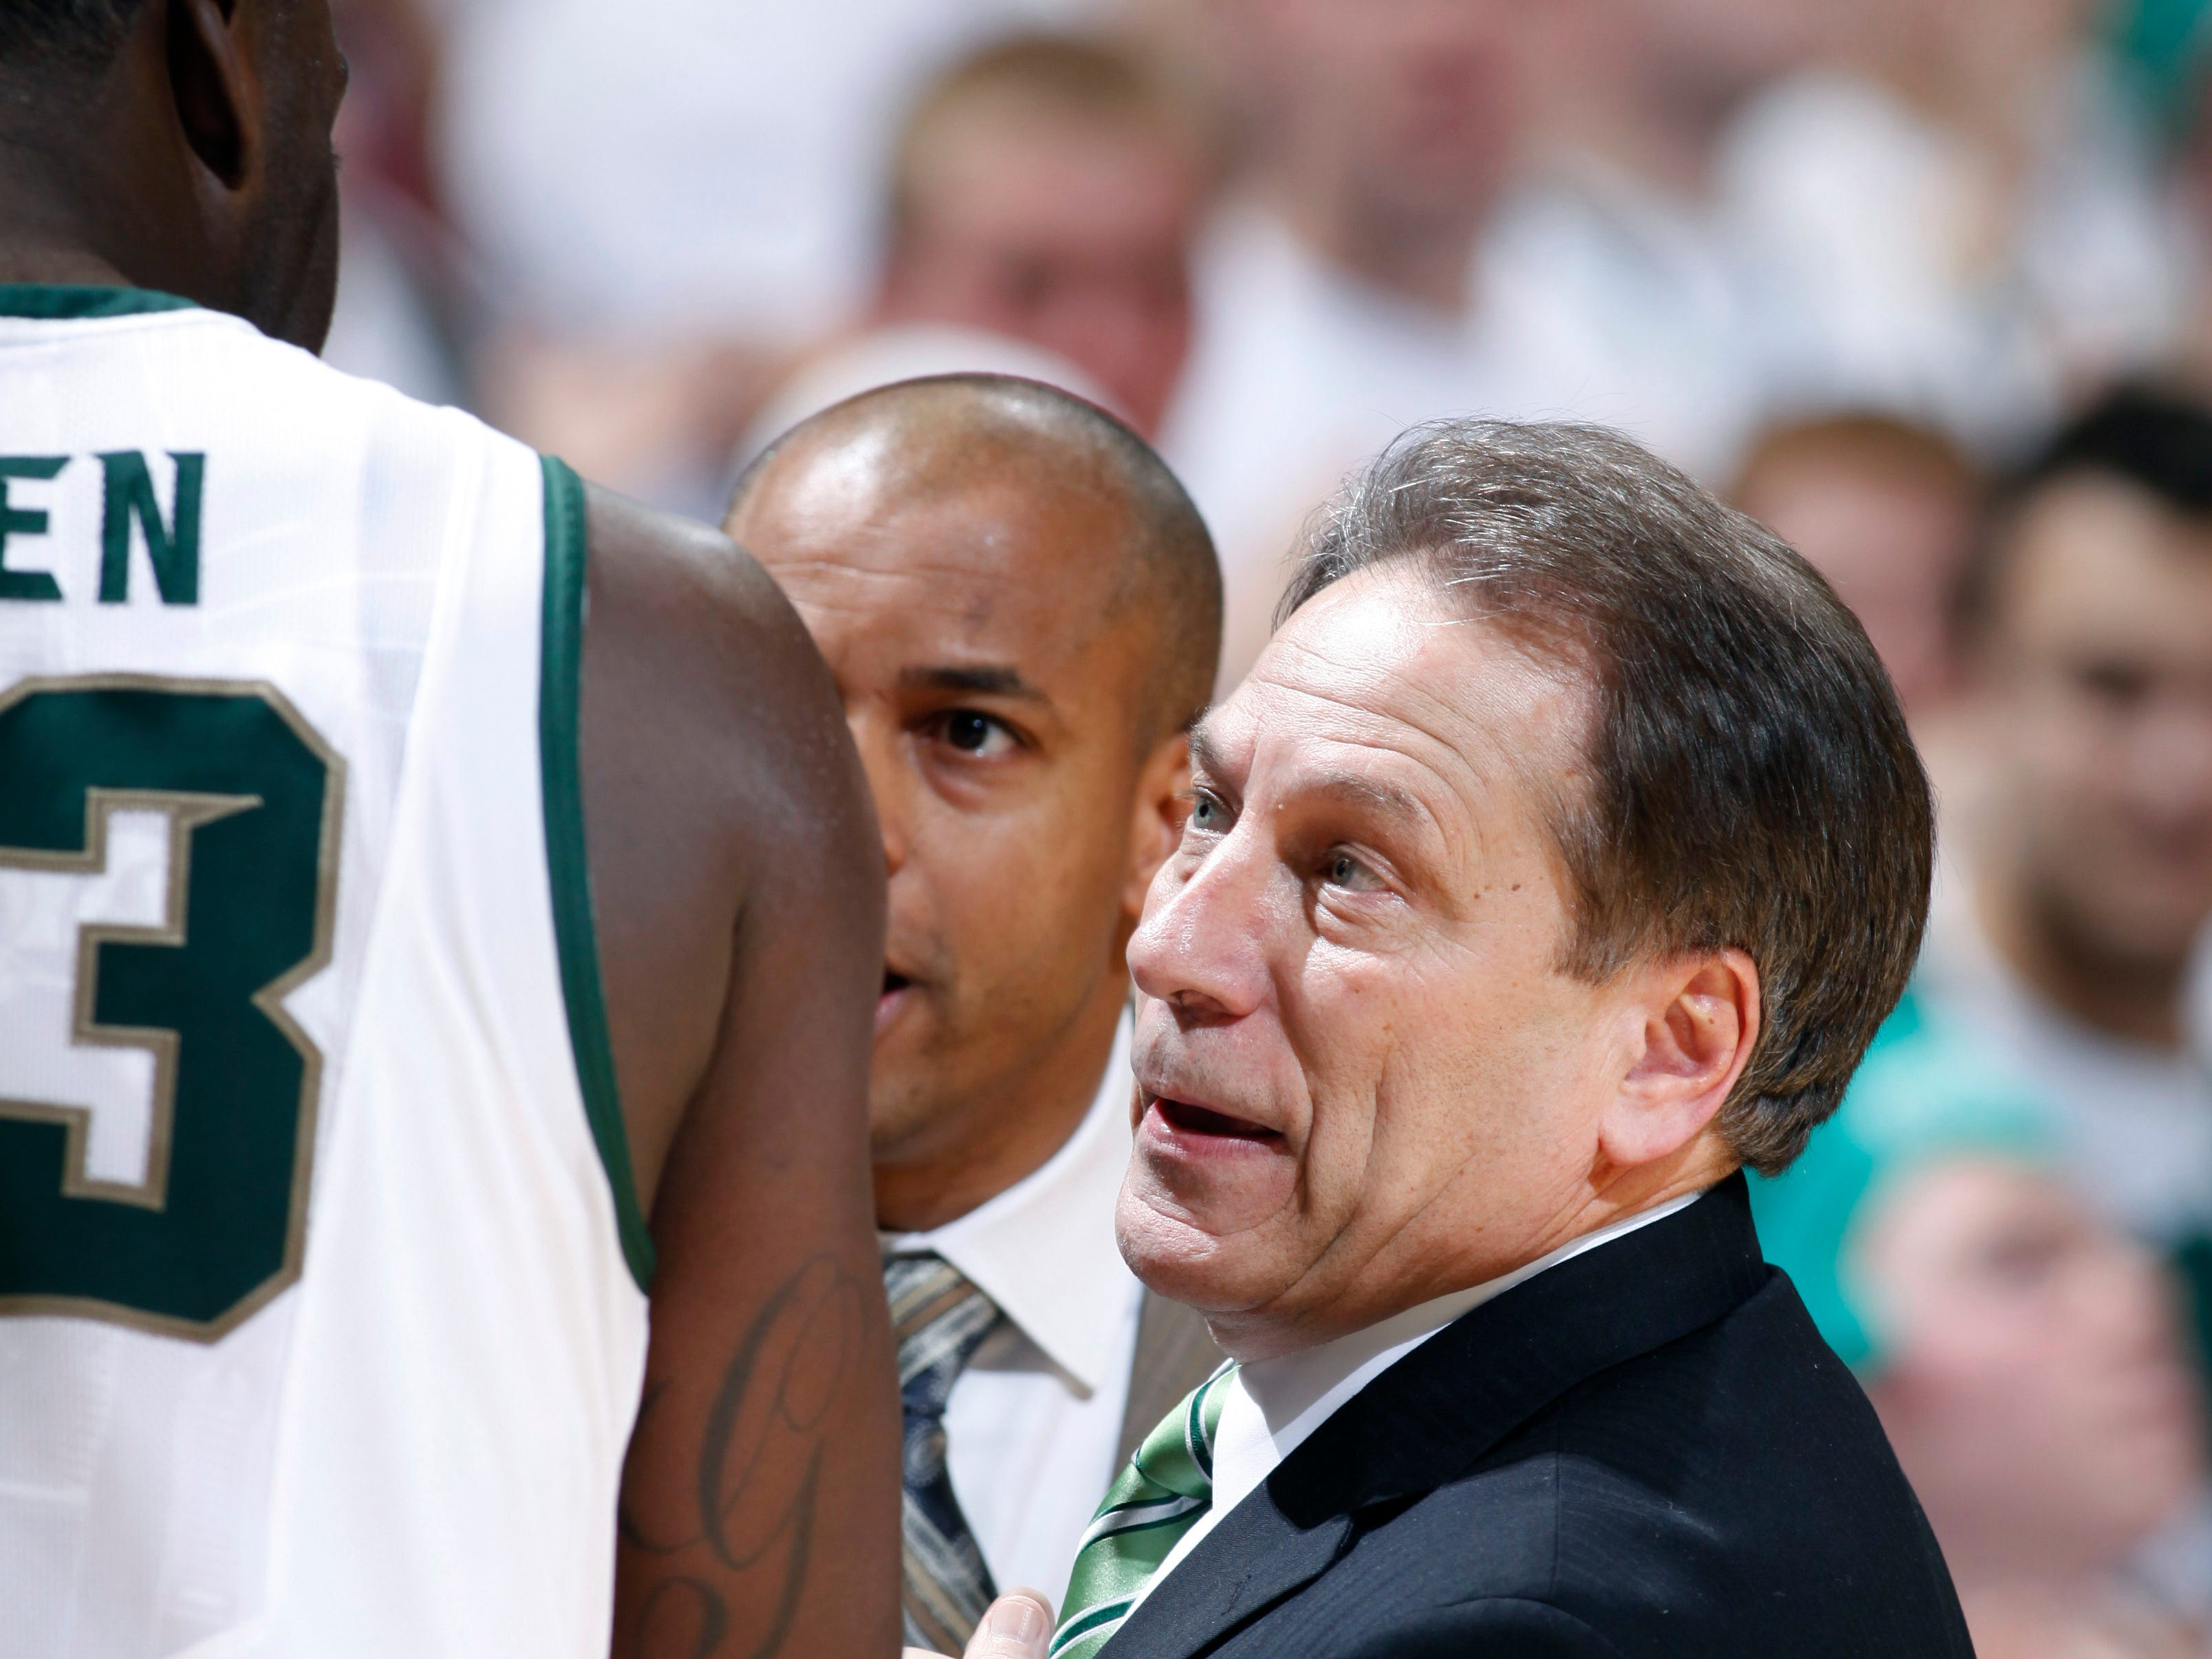 Michigan State coach Tom Izzo, right, and associate head coach Mark Montgomery, center, talk with Draymond Green during overtime of an NCAA college basketball game against Northwestern, Saturday, Jan. 15, 2011, in East Lansing, Mich. Michigan State won 71-67 in overtime.